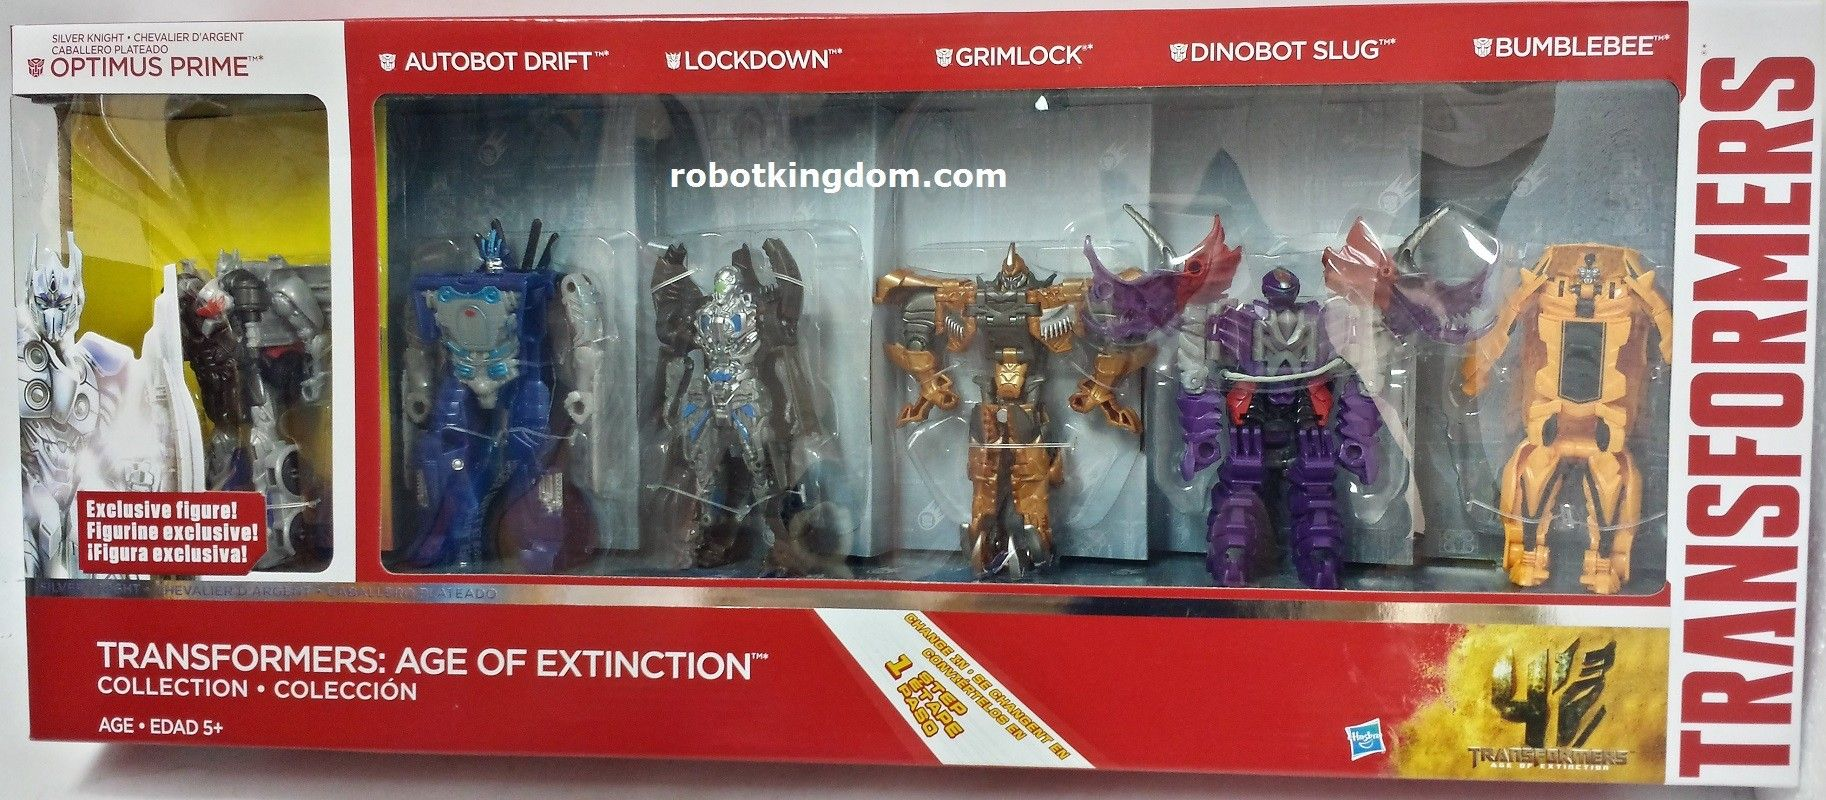 Transformers Robots in Disguise Collection Action Figure 6-Pack 3-Step Changer